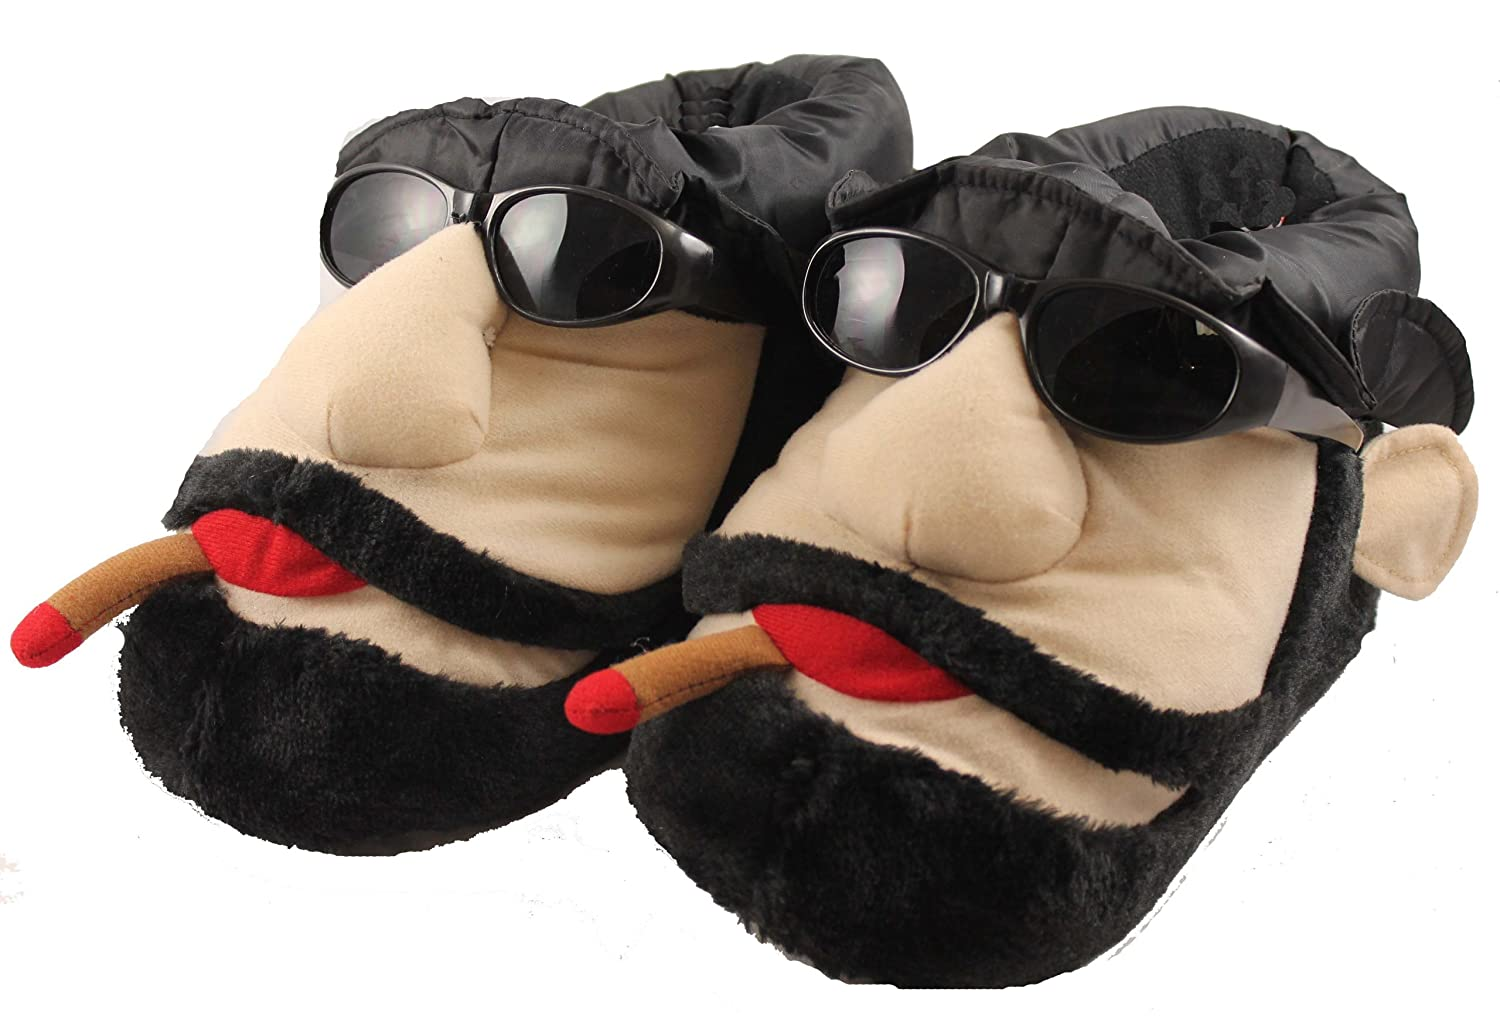 Mens Cigar Man Novelty Funny Big Slippers Size 7 to 12 UK  GREAT GIFT FOR  ALL AGES 7 UK MENS Amazoncouk Shoes  Bags